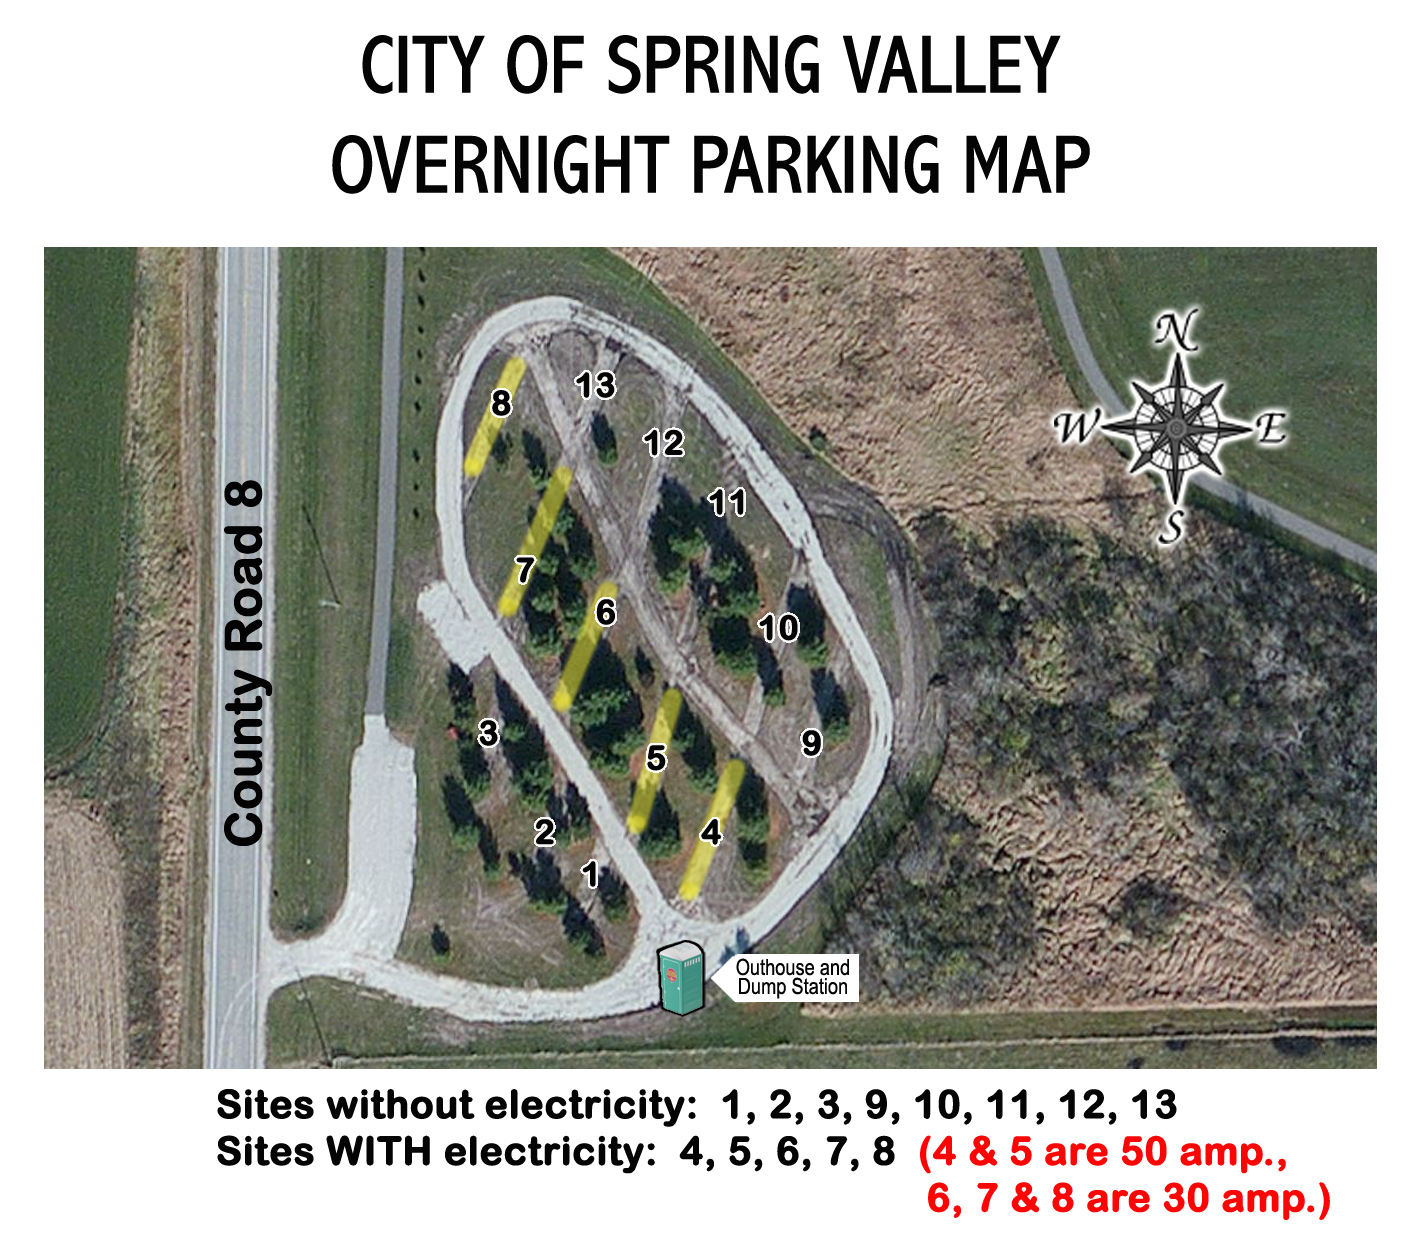 RV Parking Form and Map - City of Spring Valley, MN